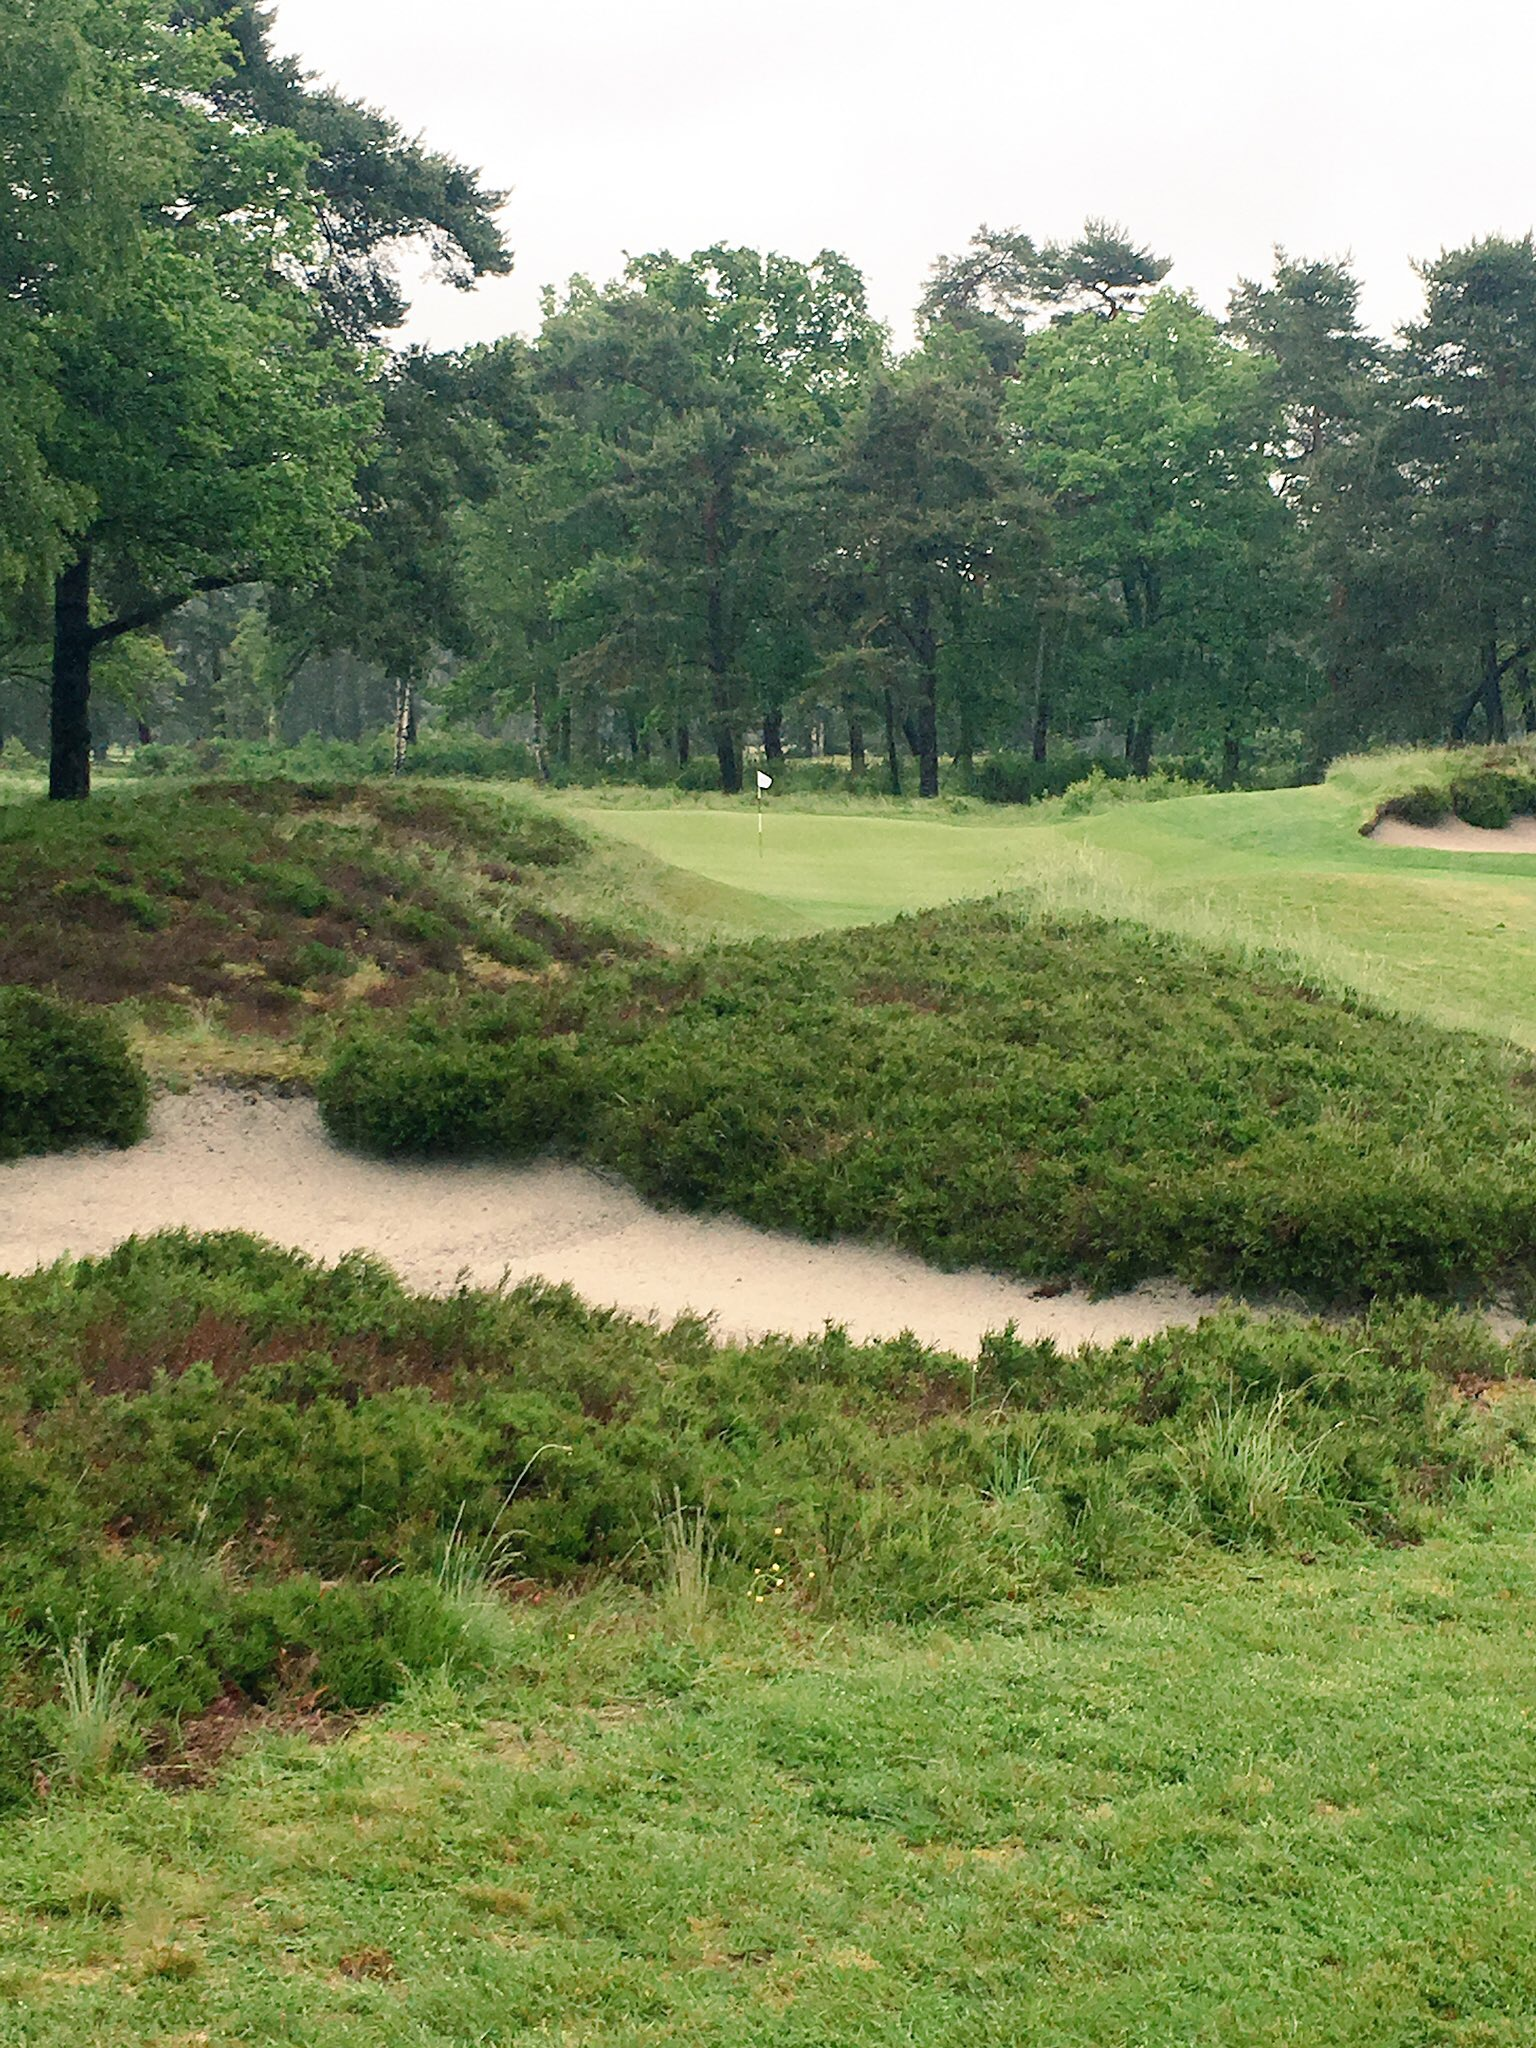 The 9 hole Valieres course is a great test